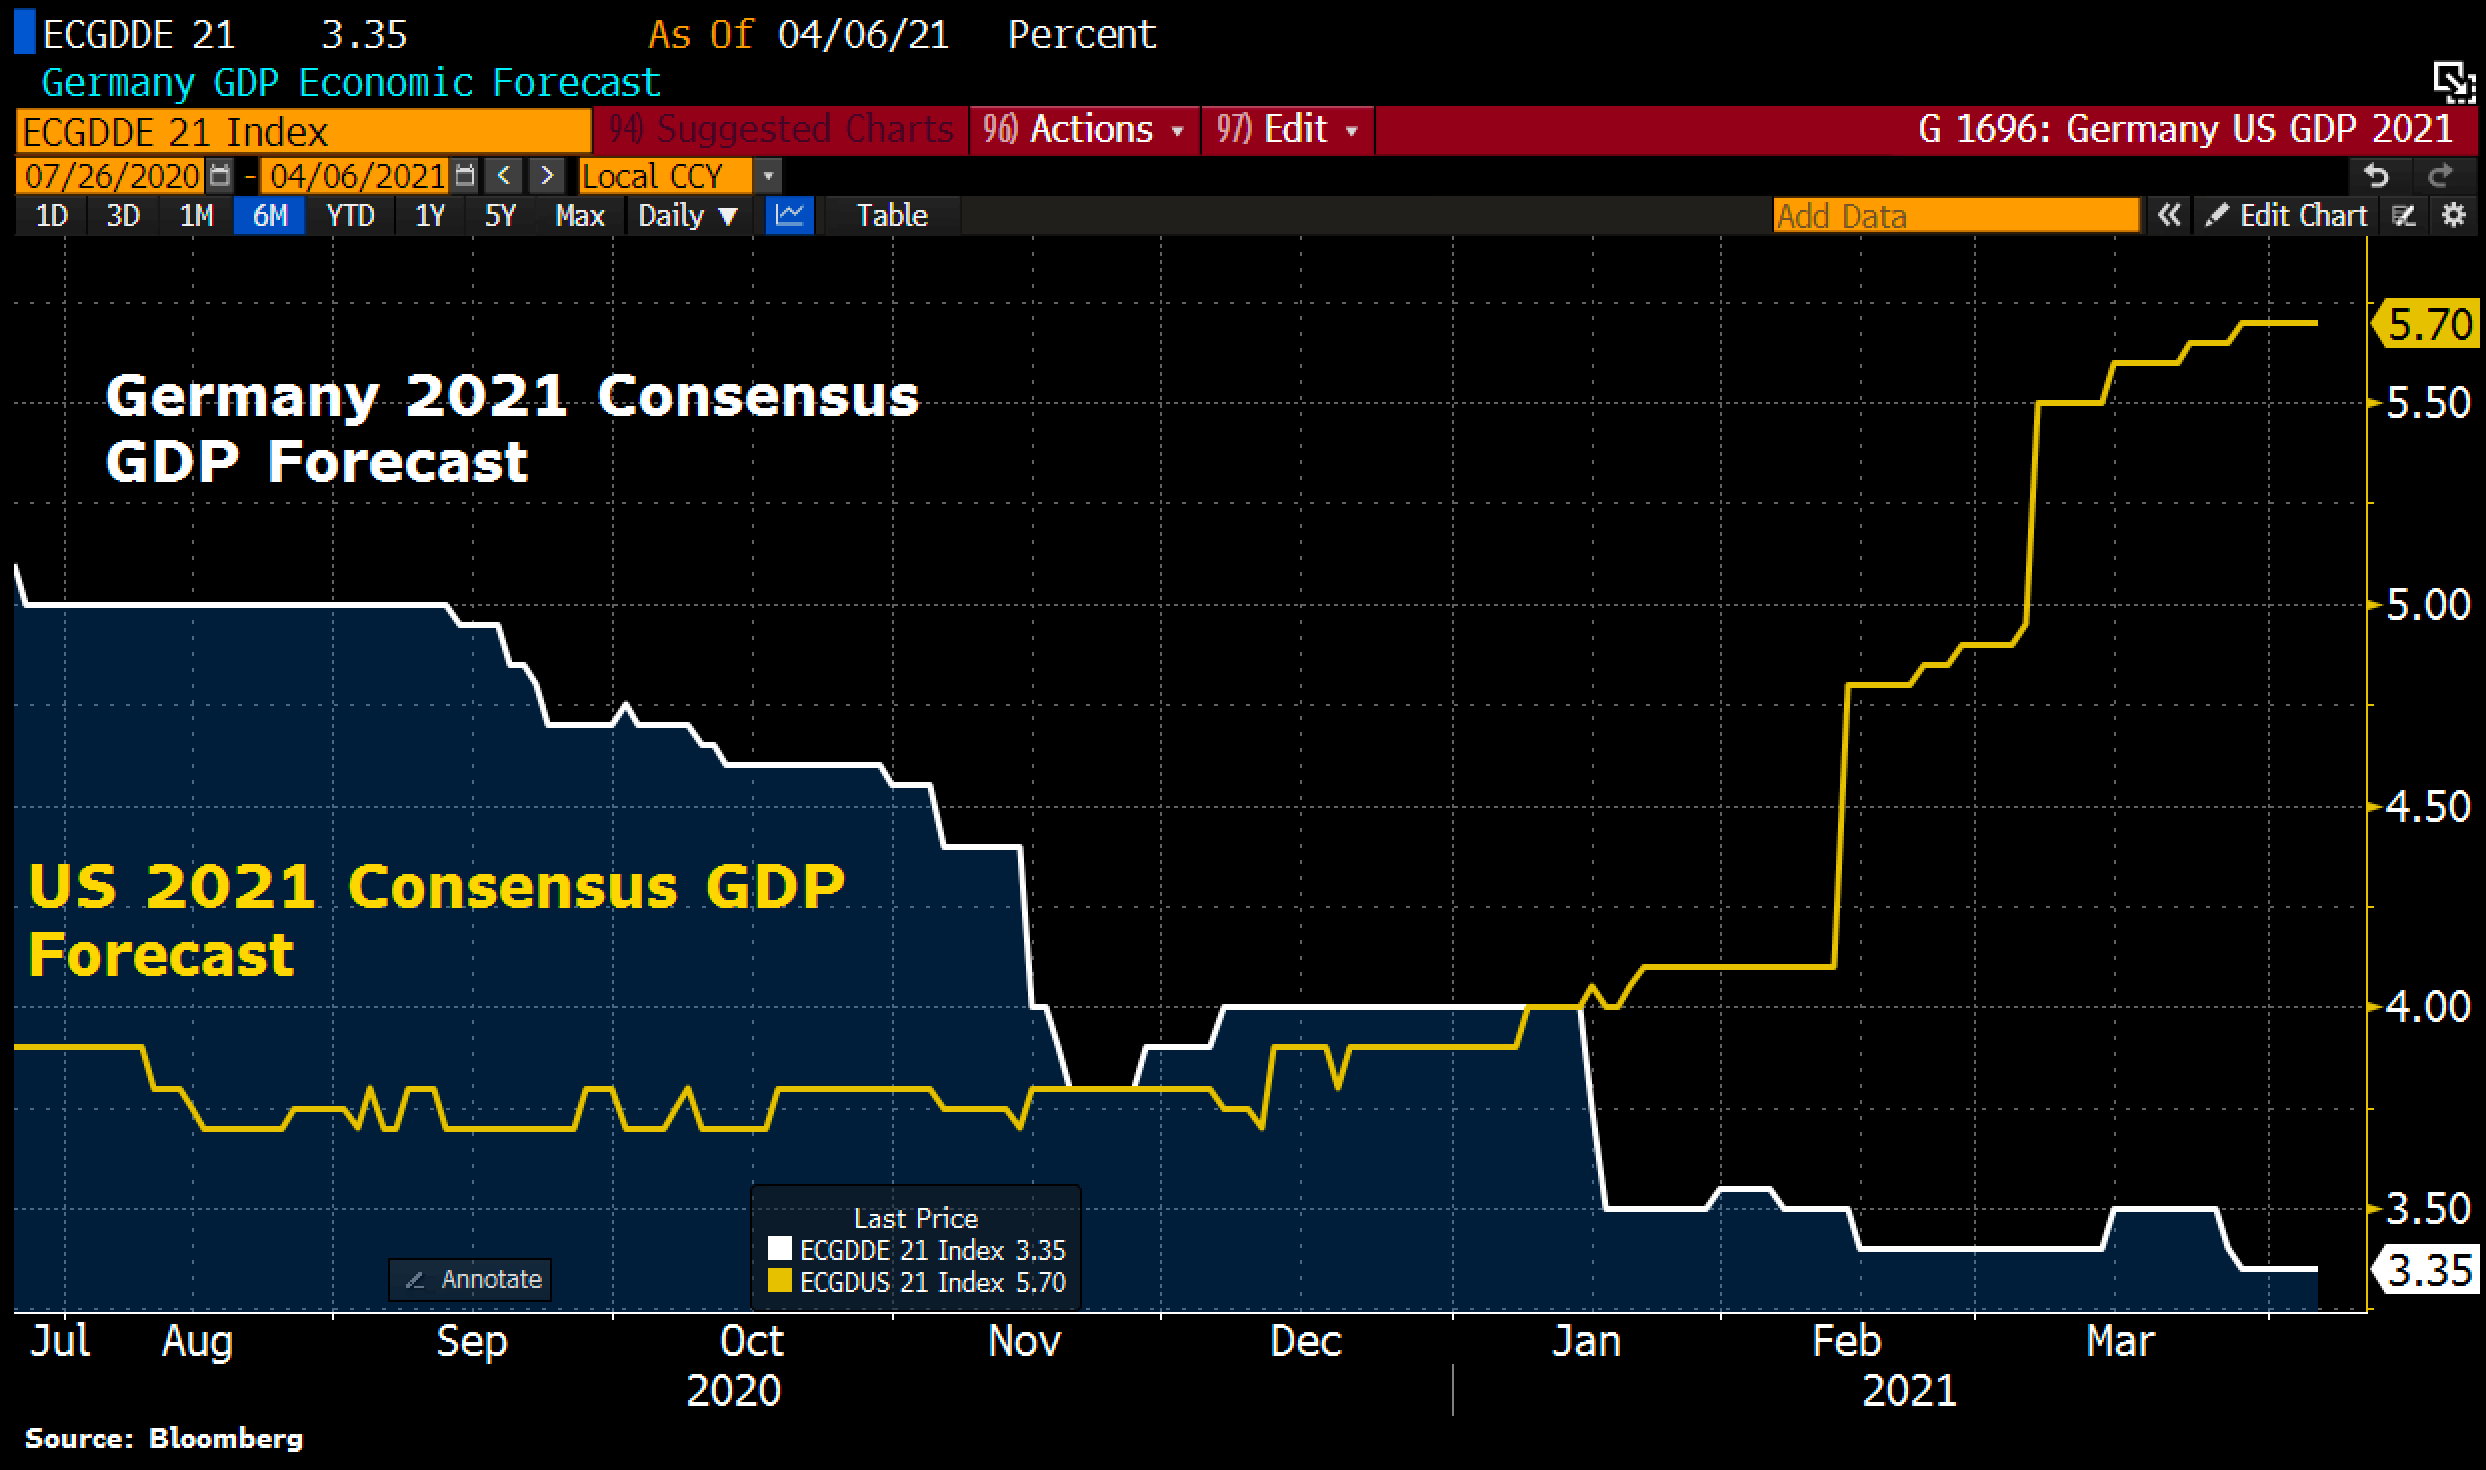 2021 GDP growth forecasts for the US and Germany (based on Bloomberg consensus)